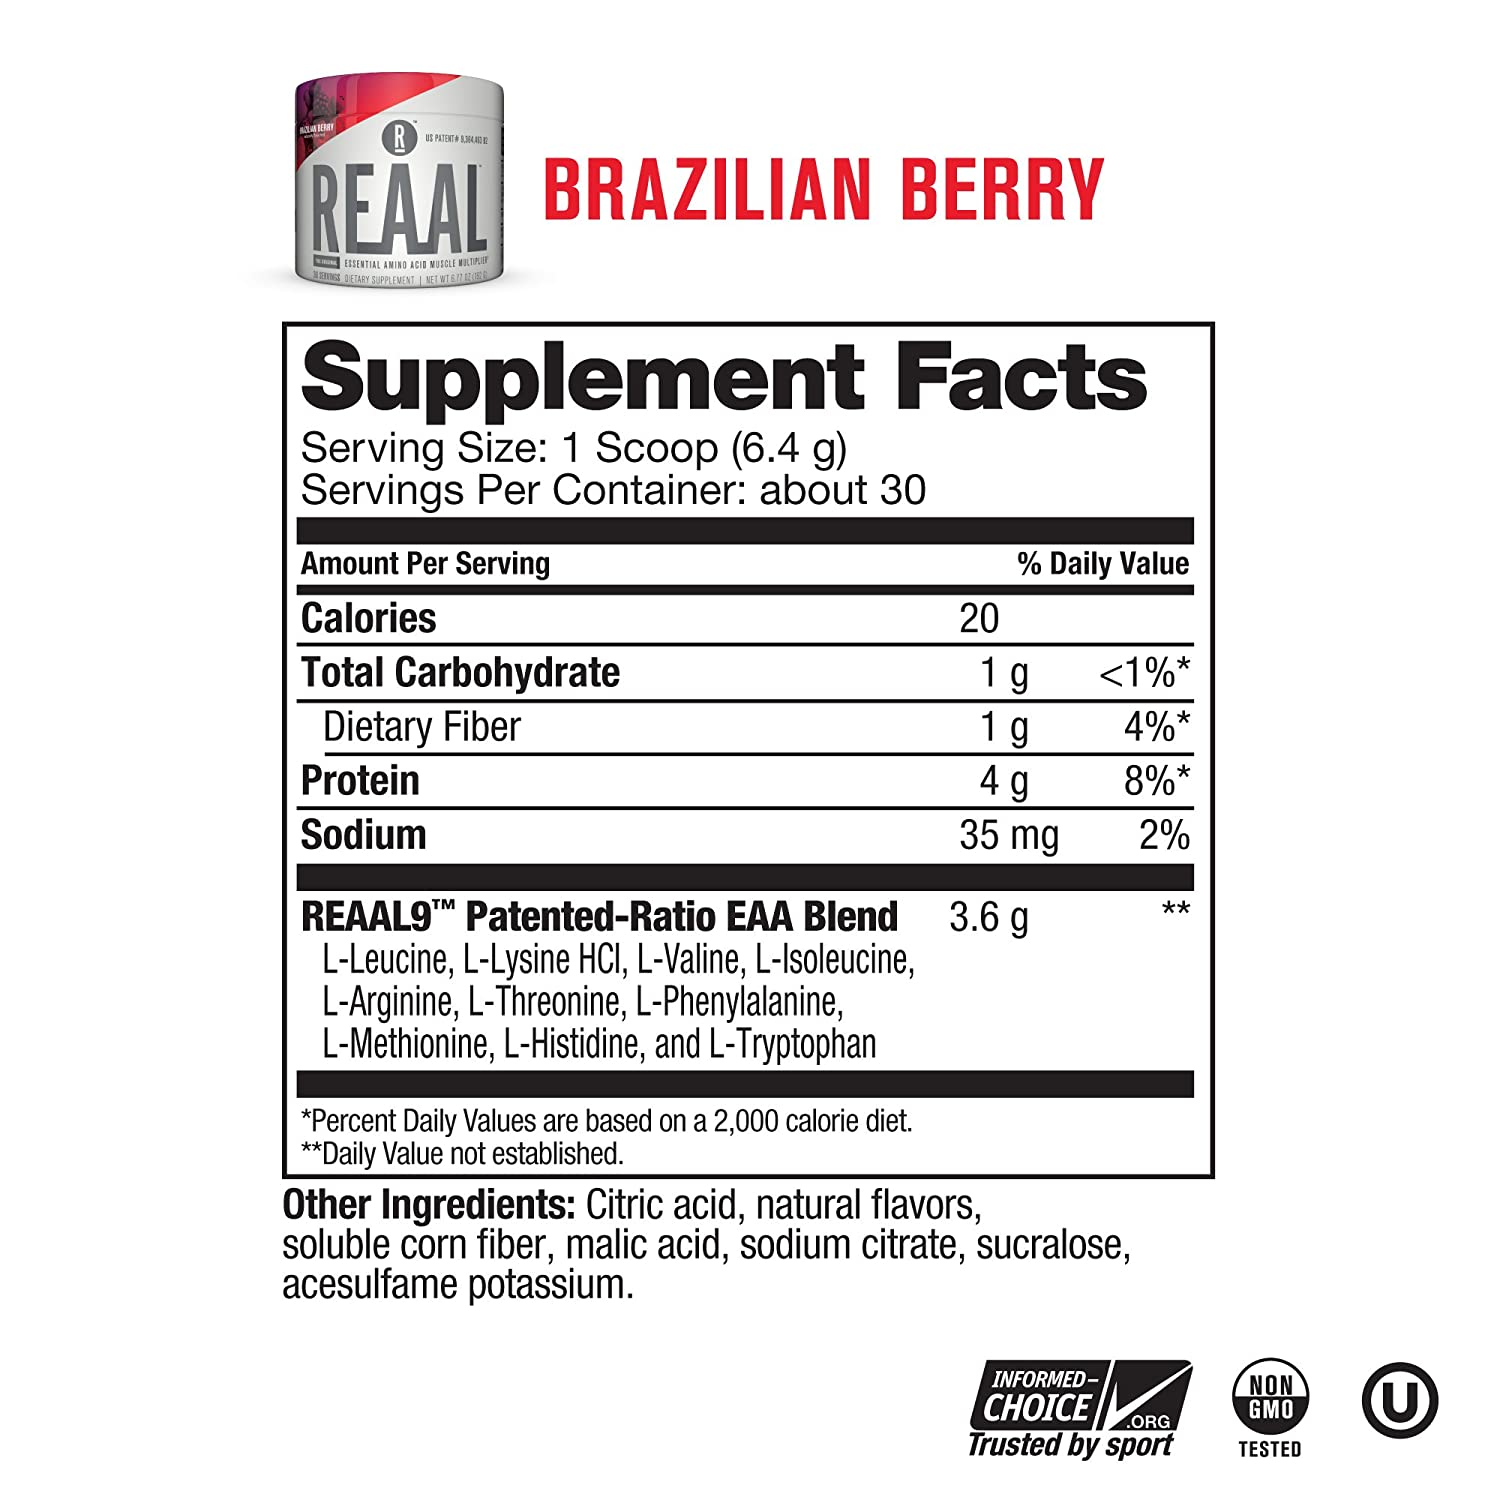 REAAL – REAAL Brazilian Berry Powder, Helps Build, Restore, and Maintain Lean Muscle with Essential Amino Acids, Gluten Free, Bloat Free, Lactose Free, Caffeine Free, Vegan, 30 Servings 6.77 Oz